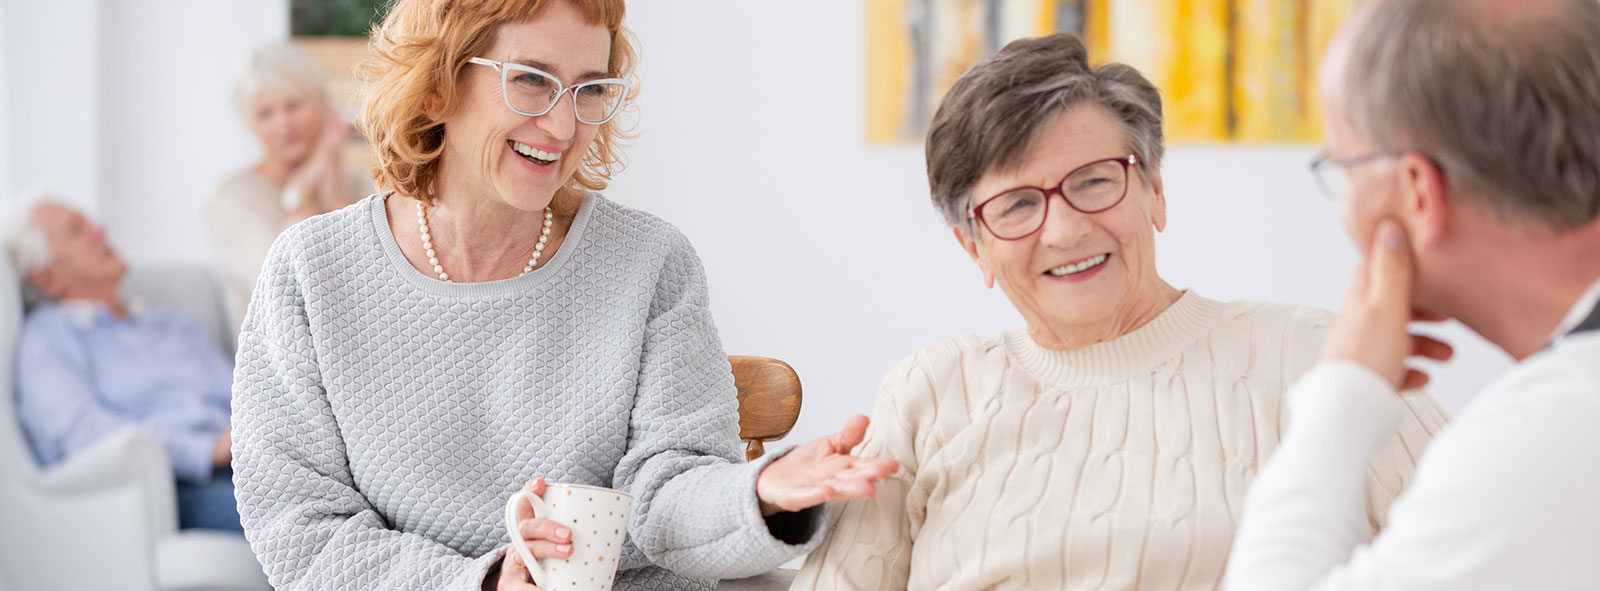 elderly people at assisted living facility talking and enjoying each other's company